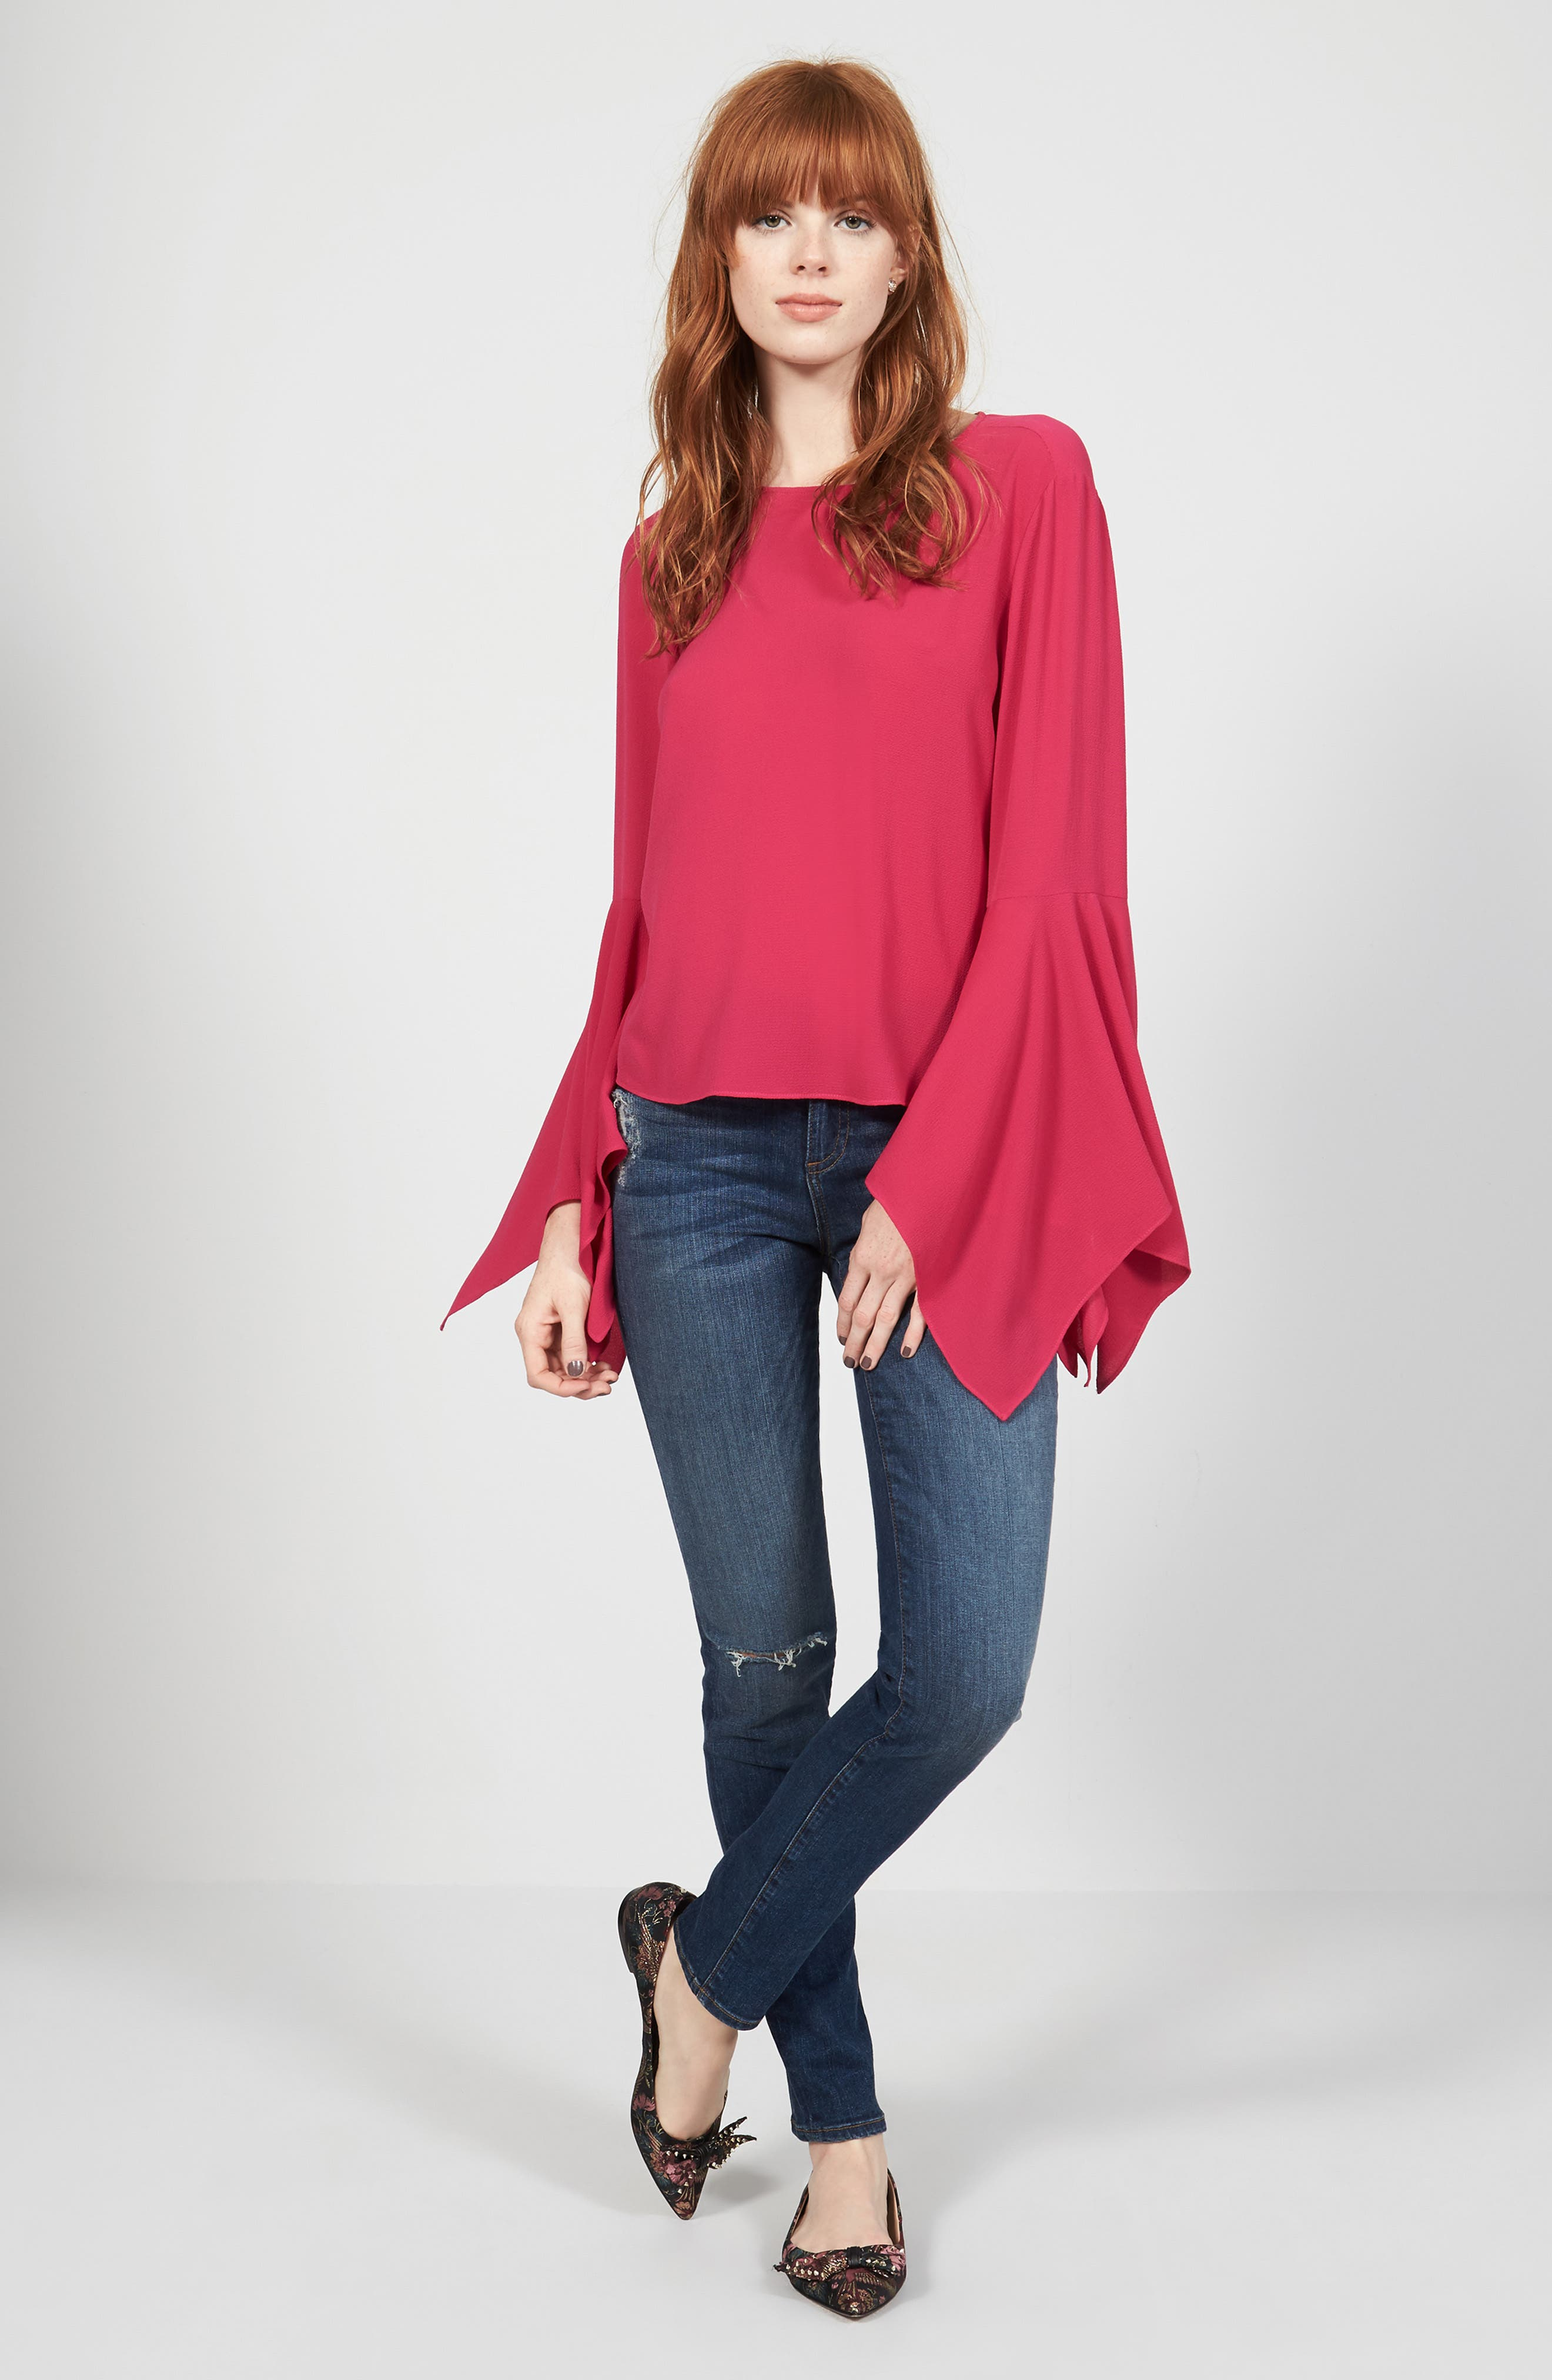 Vince Camuto Blouse & KUT from the Kloth Jeans Outfit with Accessories